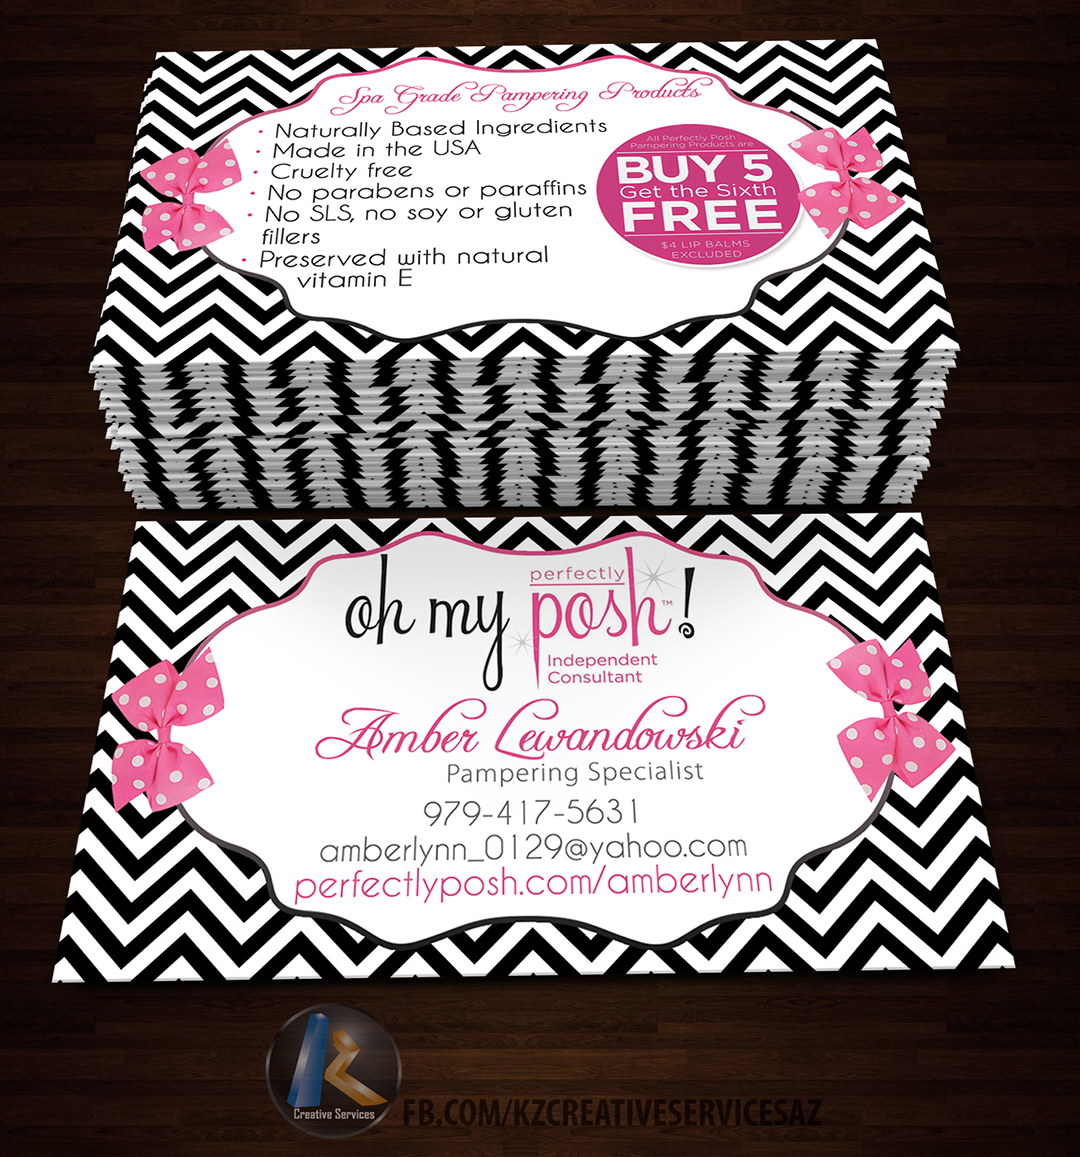 PERFECTLY POSH BUSINESS CARDS - 17 · KZ Creative Services · Online ...